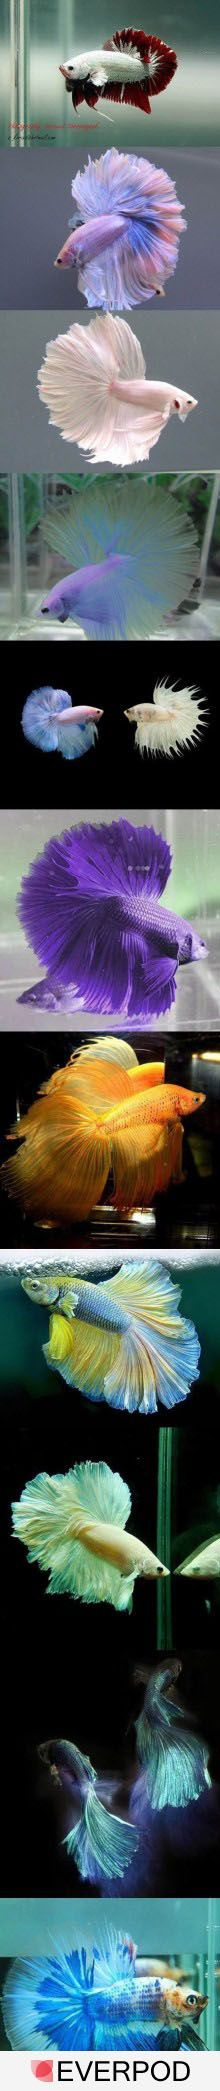 Siamese fighting fish : didn't know they're in many different colors